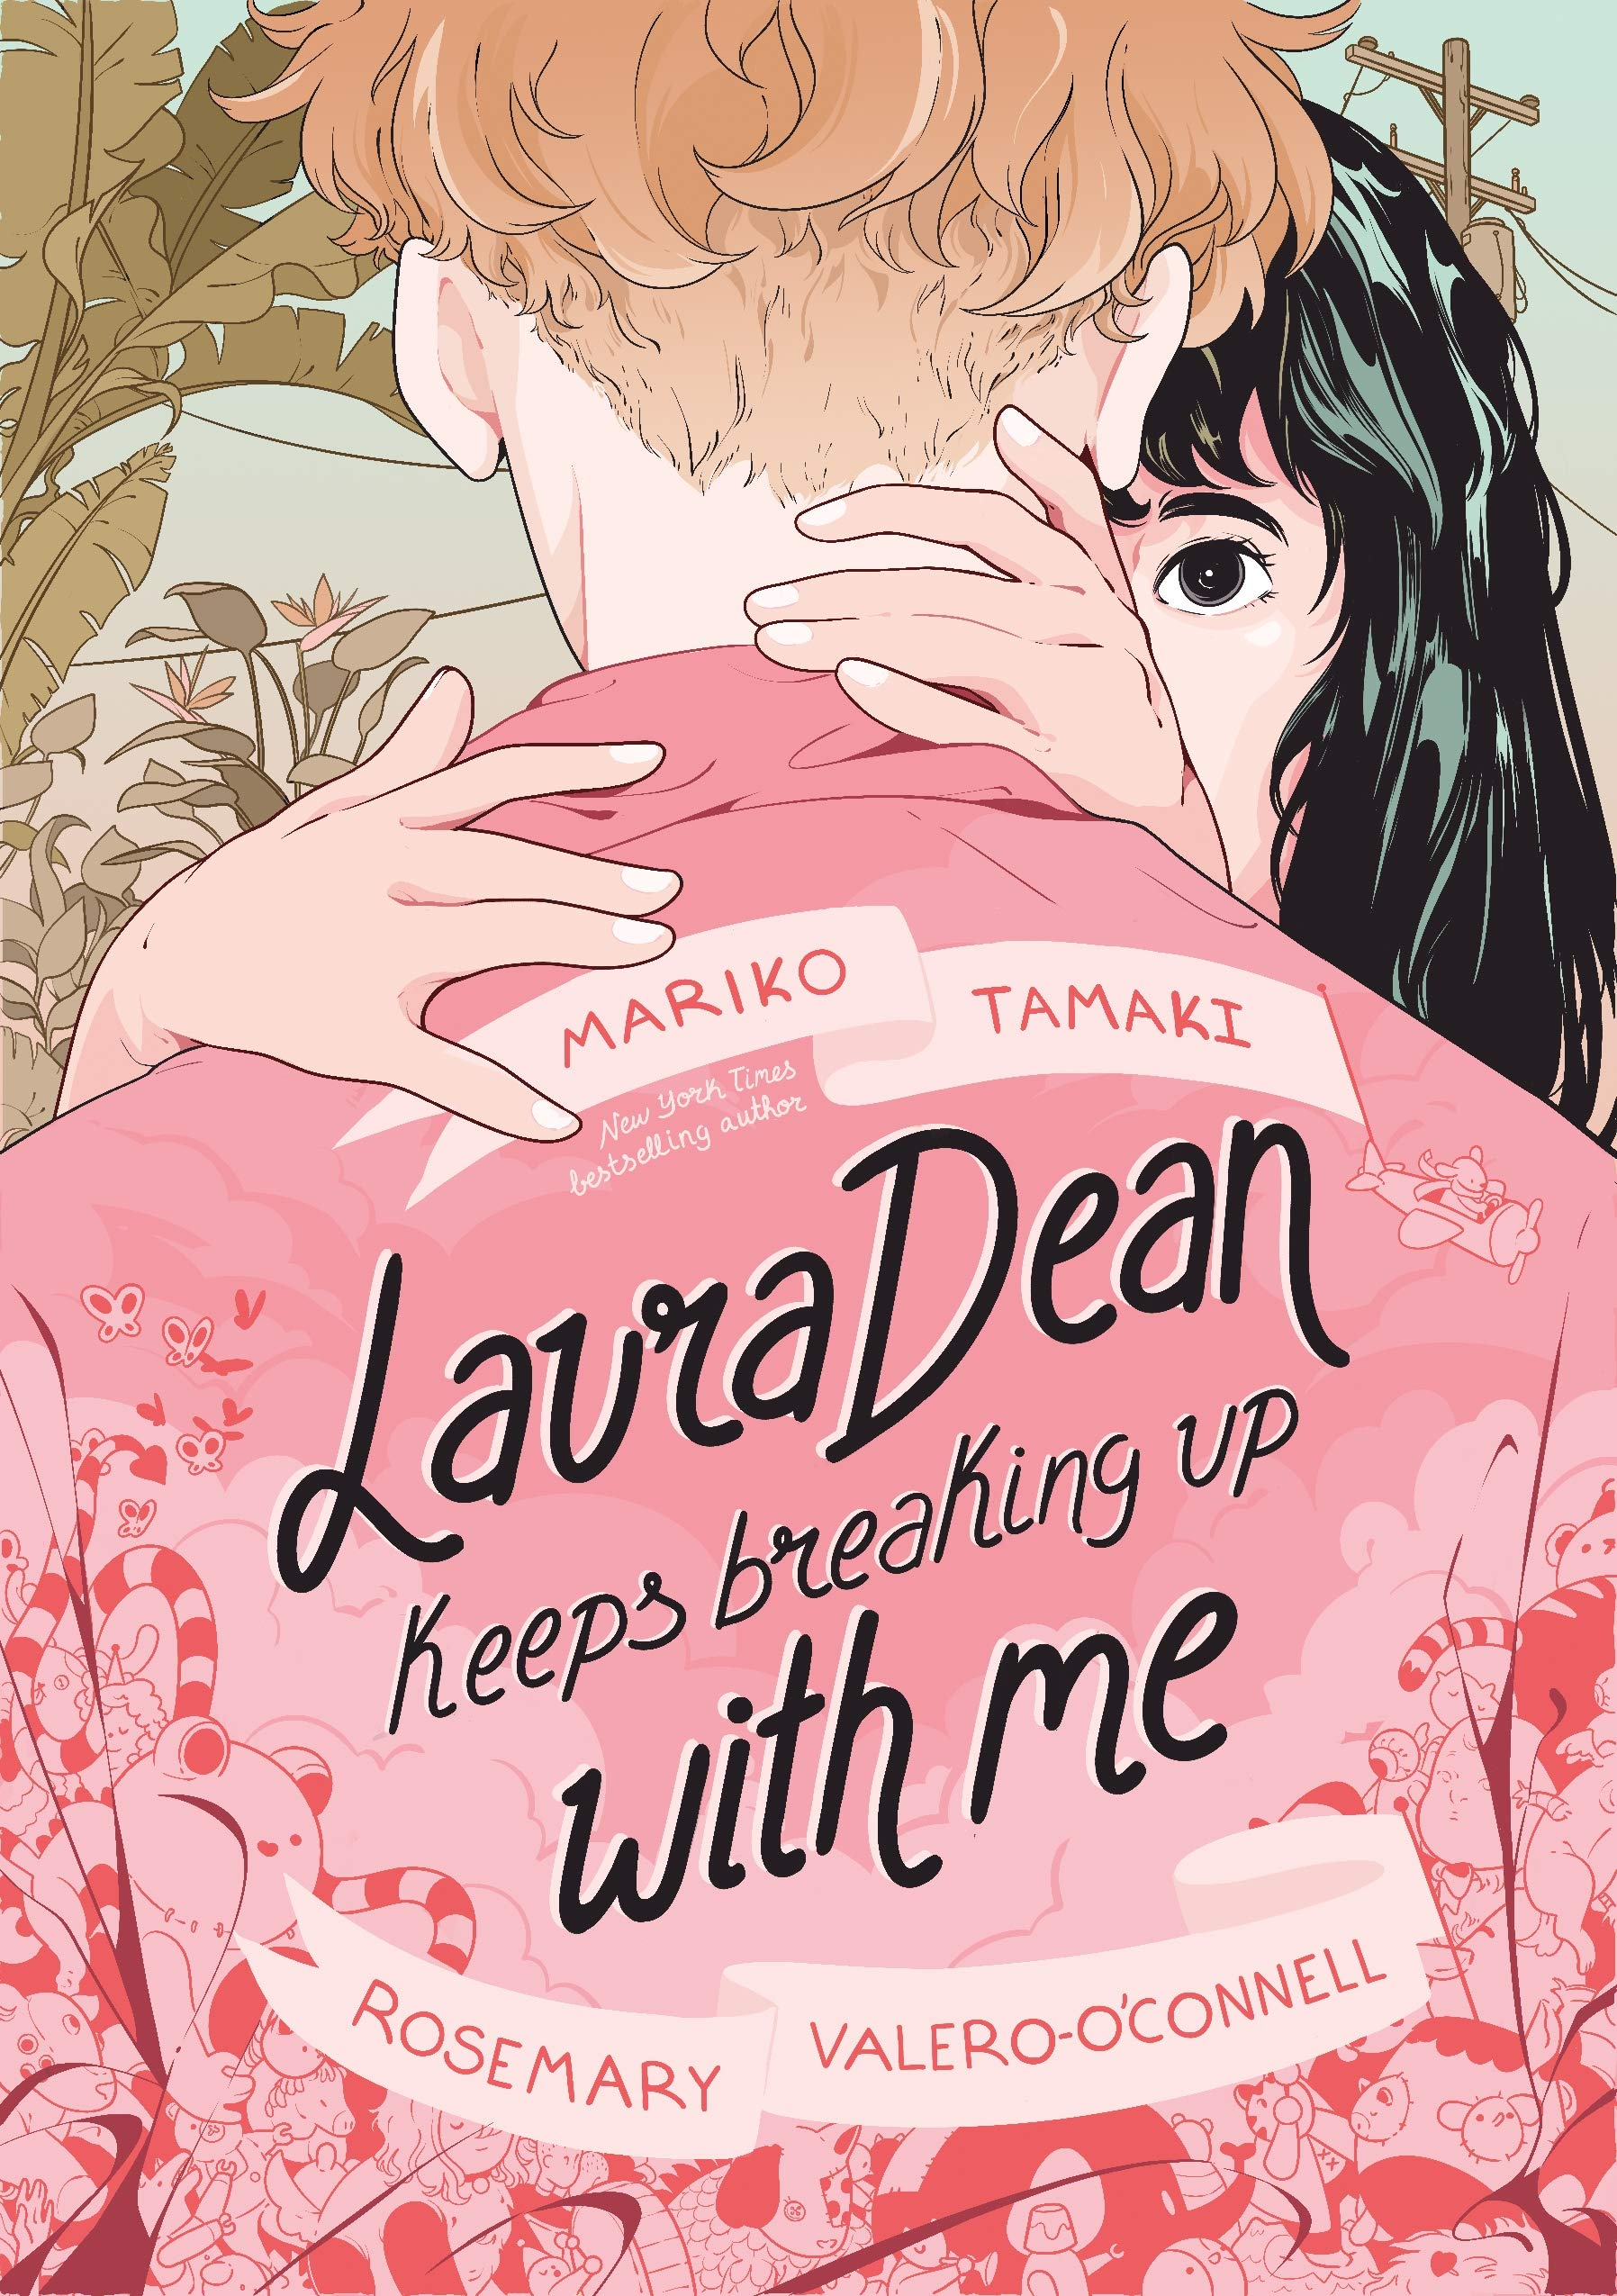 Amazon.com: Laura Dean Keeps Breaking Up with Me (9781626722590): Tamaki,  Mariko: Books